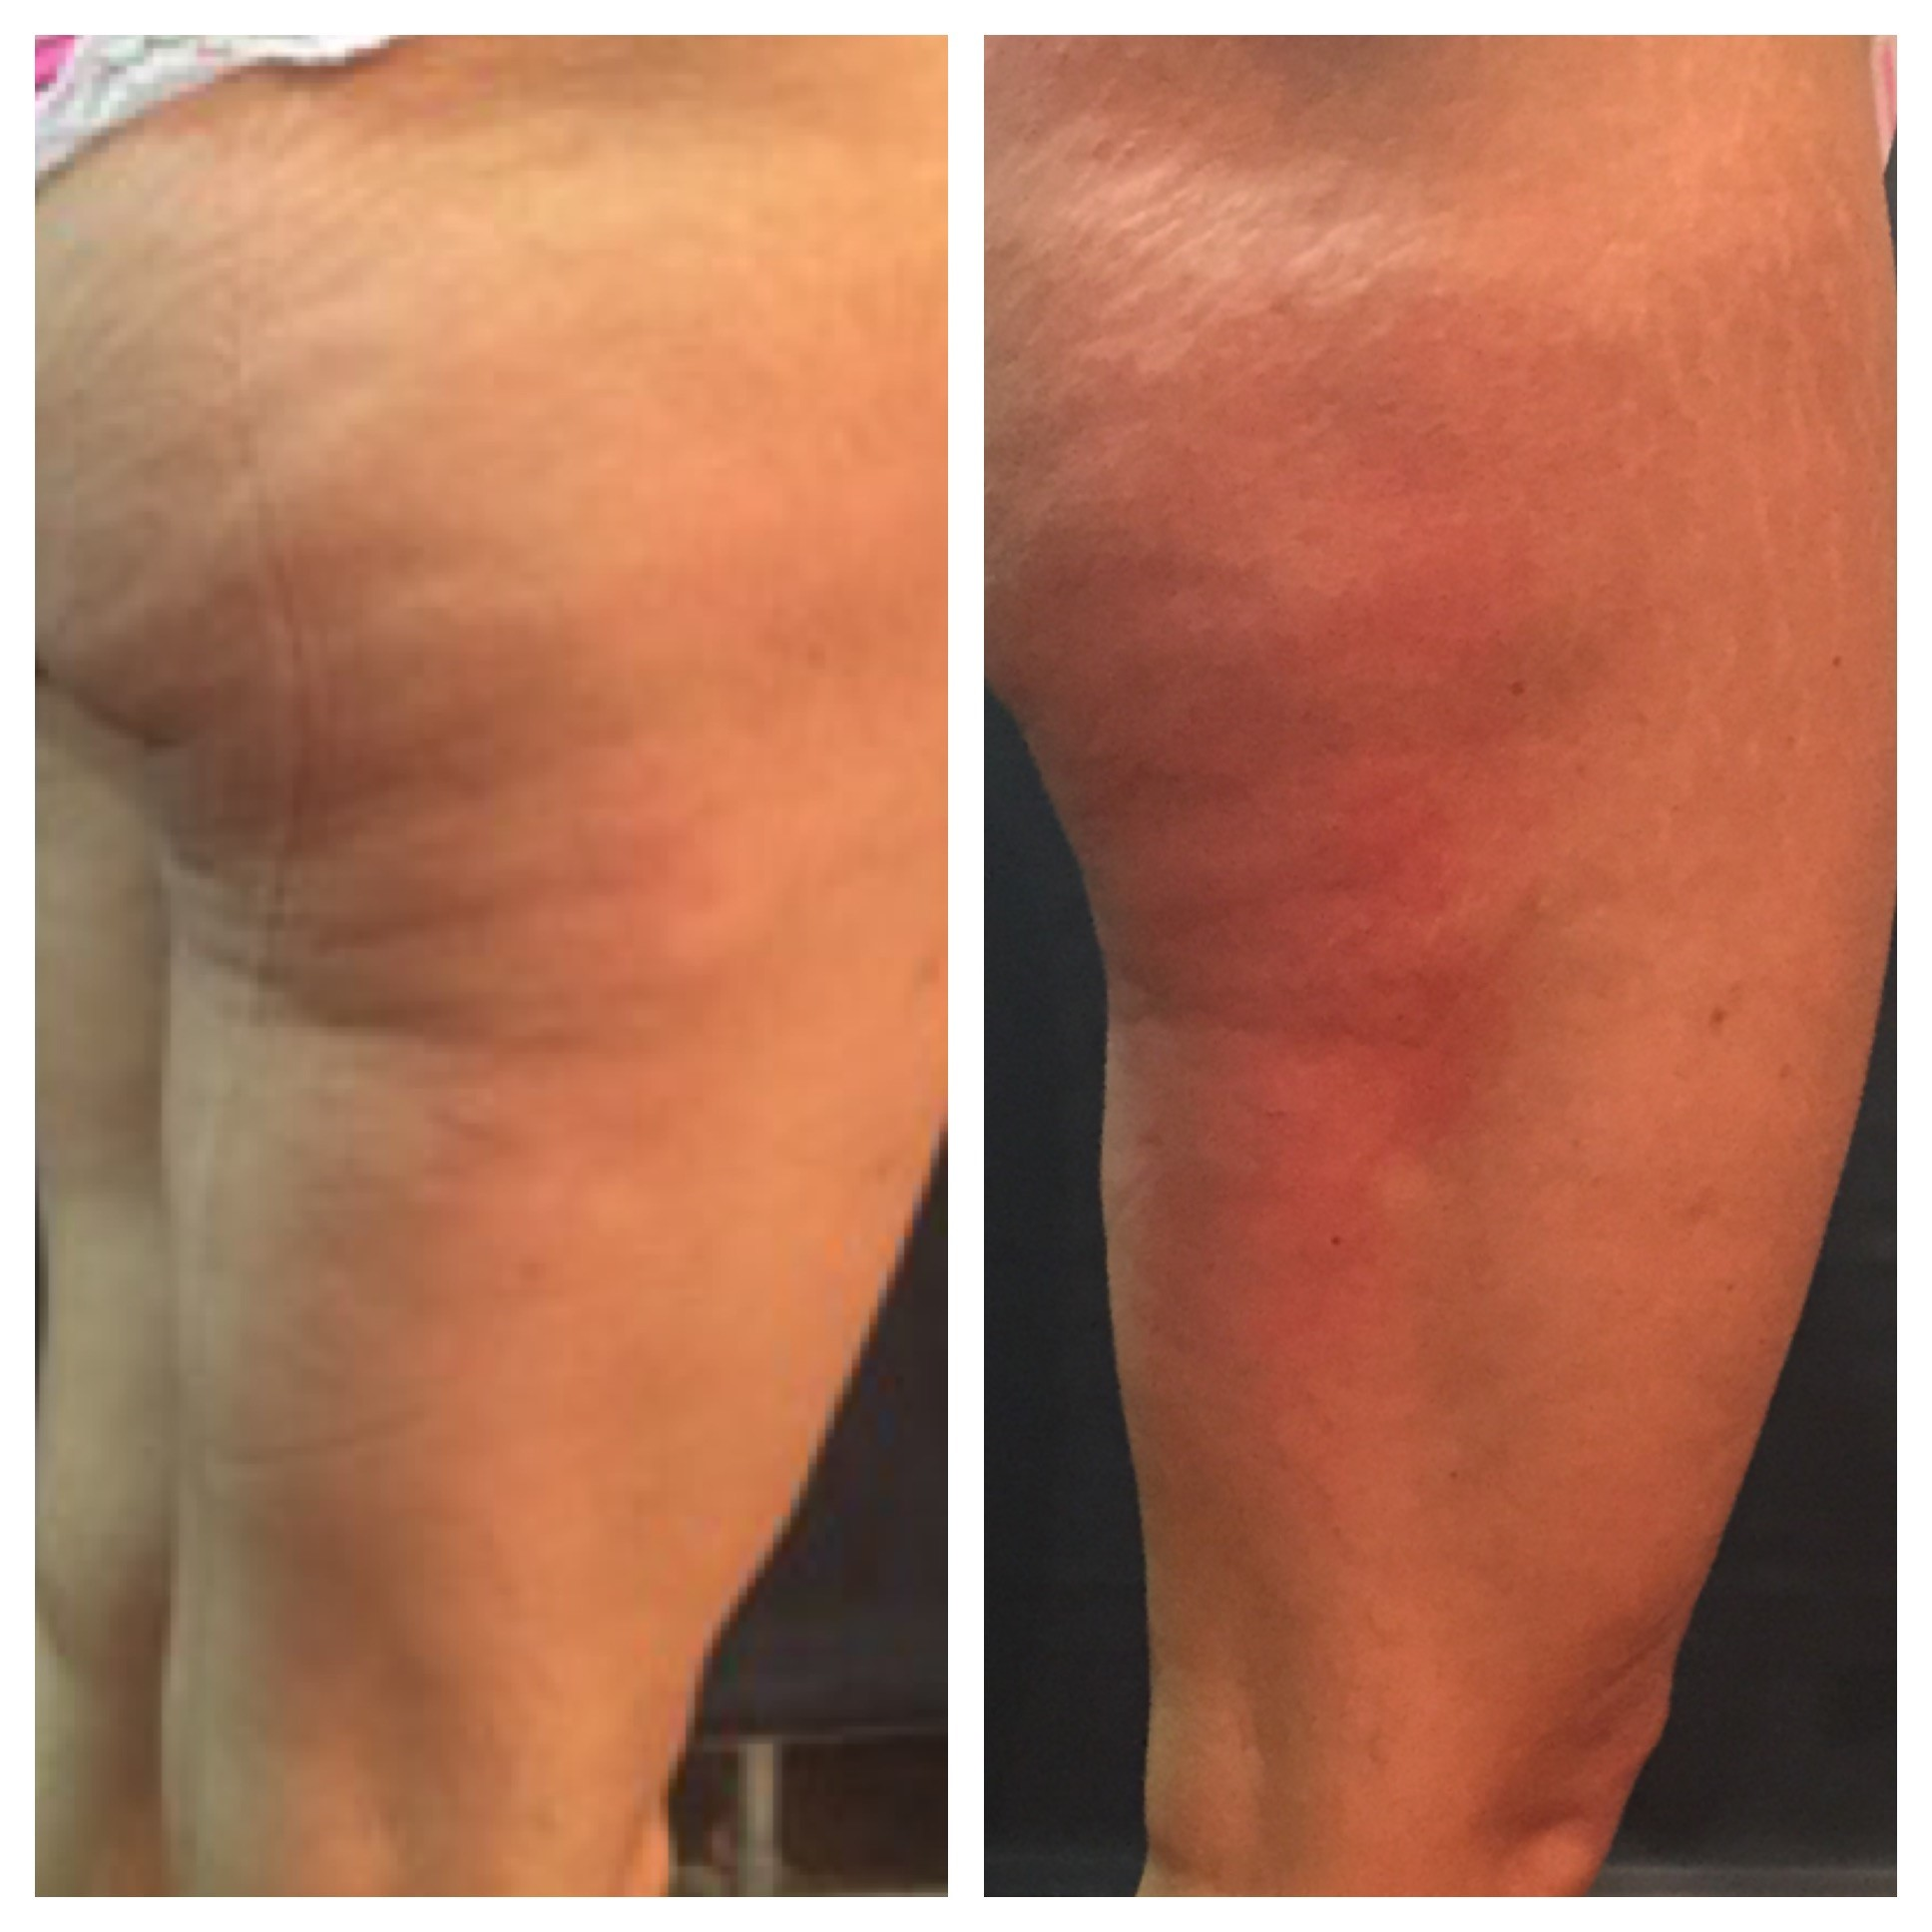 Prism Med Spa Before And After Venus Legacy Cellulite Reduction